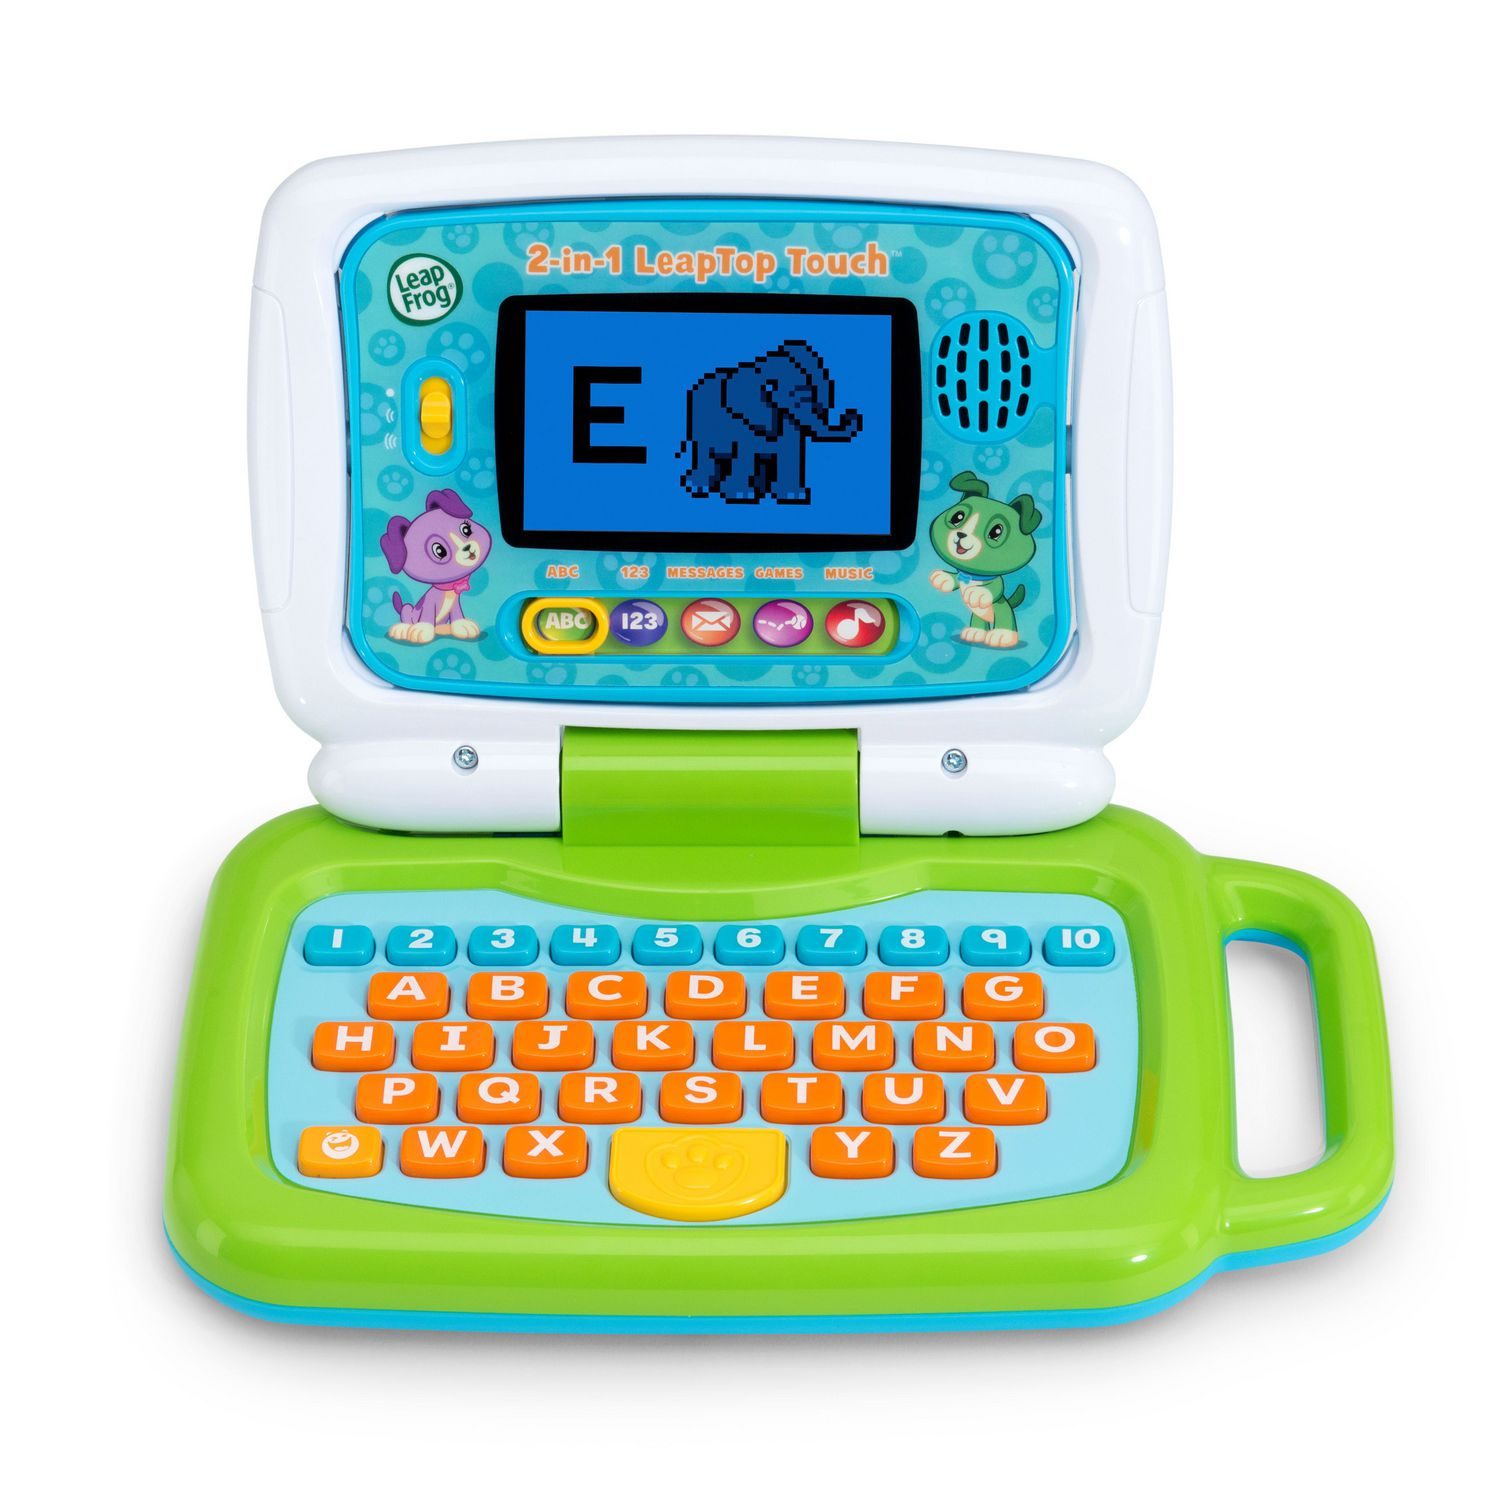 Leapfrog Ordi-Tablette P'tit Genius Touch (Vert) - Version tout Ordinateur Educatif 3 Ans